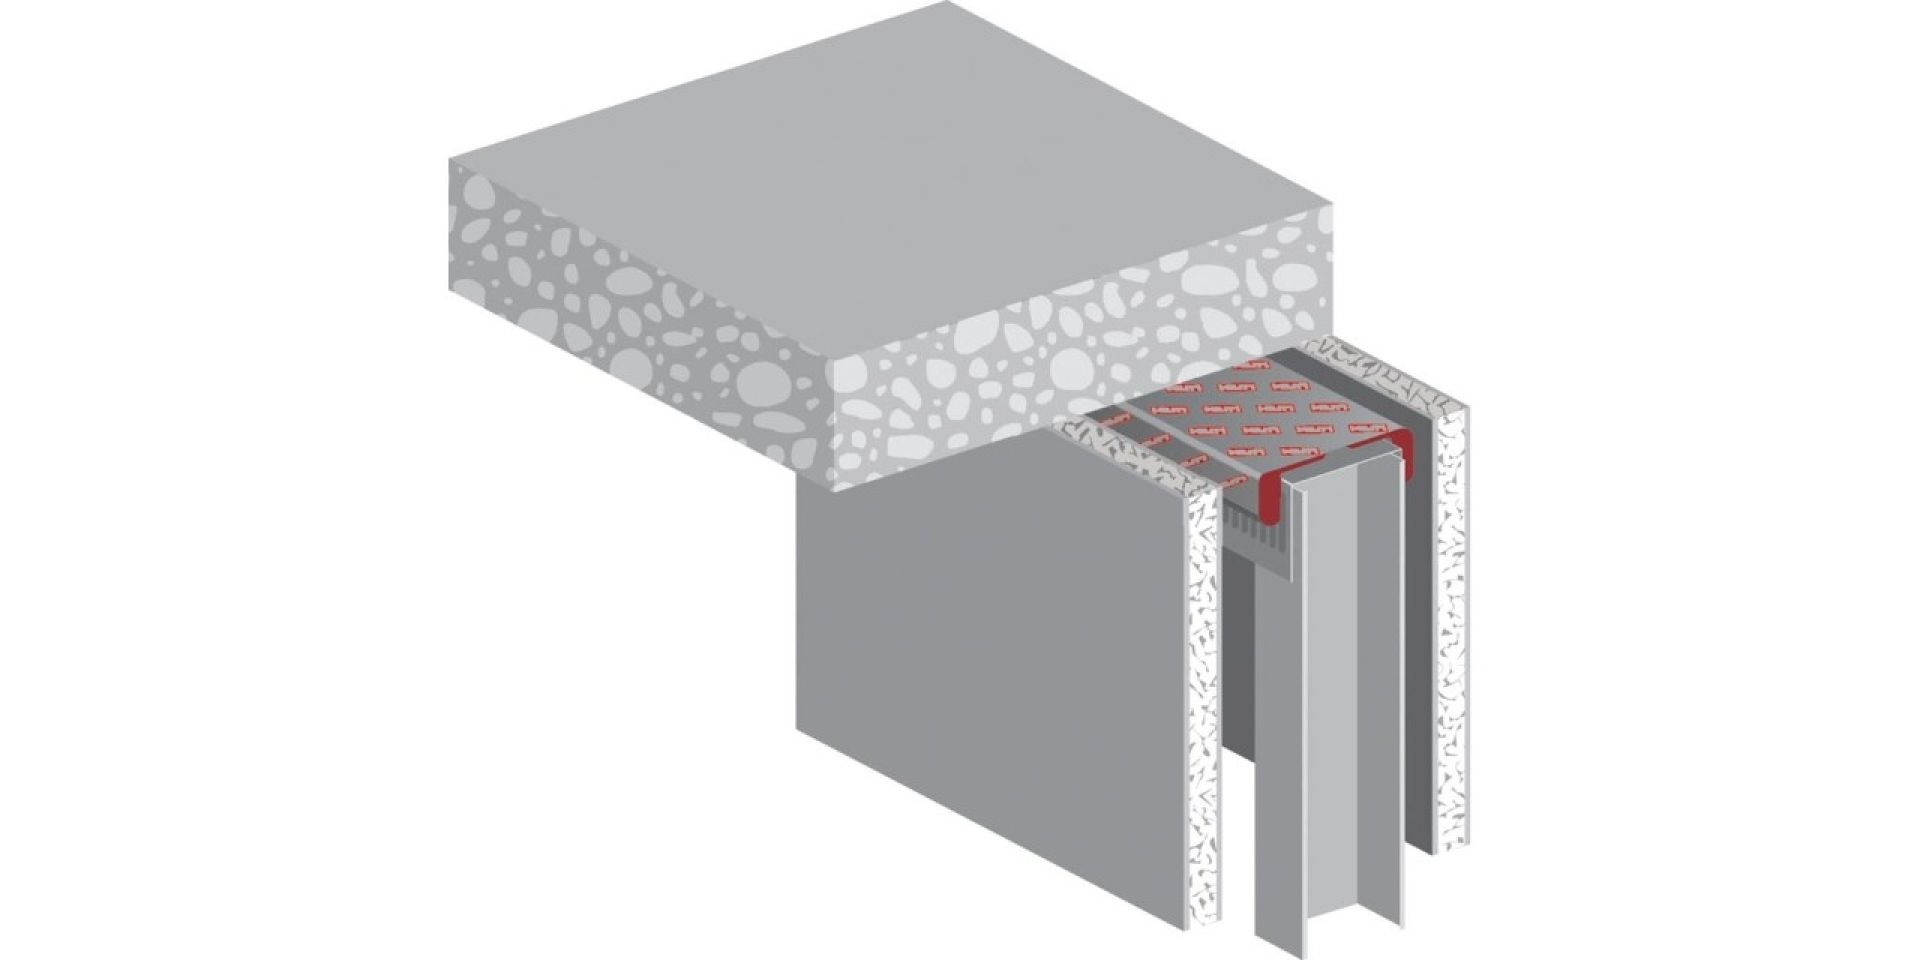 Pin On Architectural Materials Products